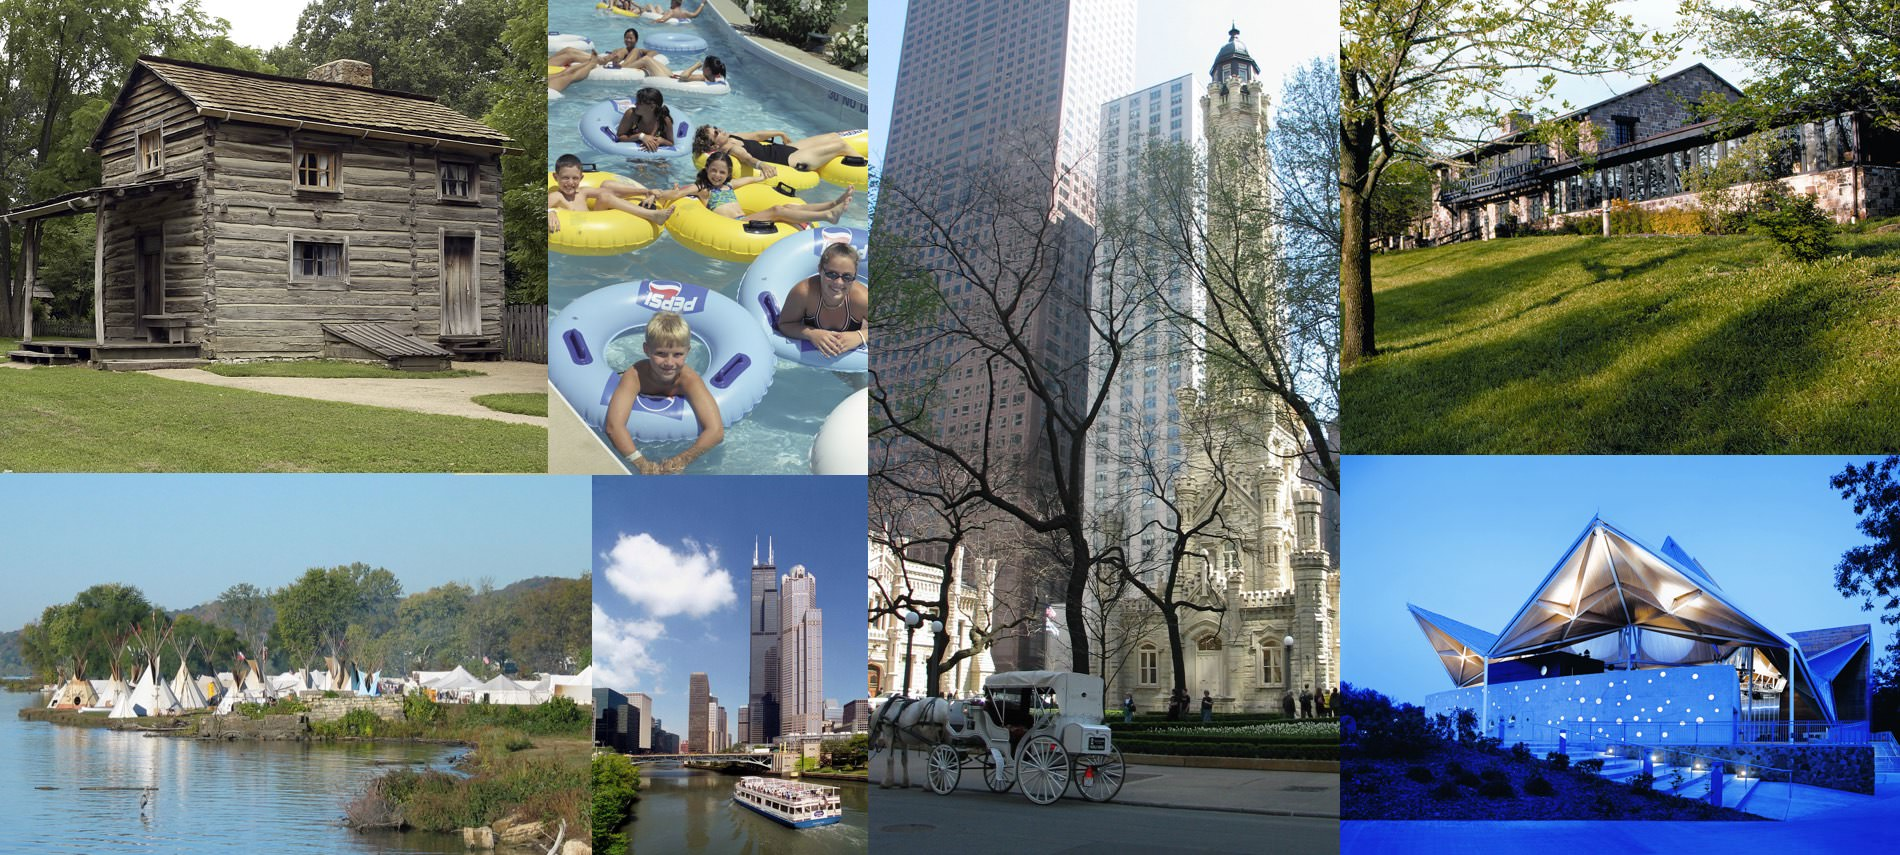 Collage of activities ranging from boating to tubing to carriage rides to museums to history tours.